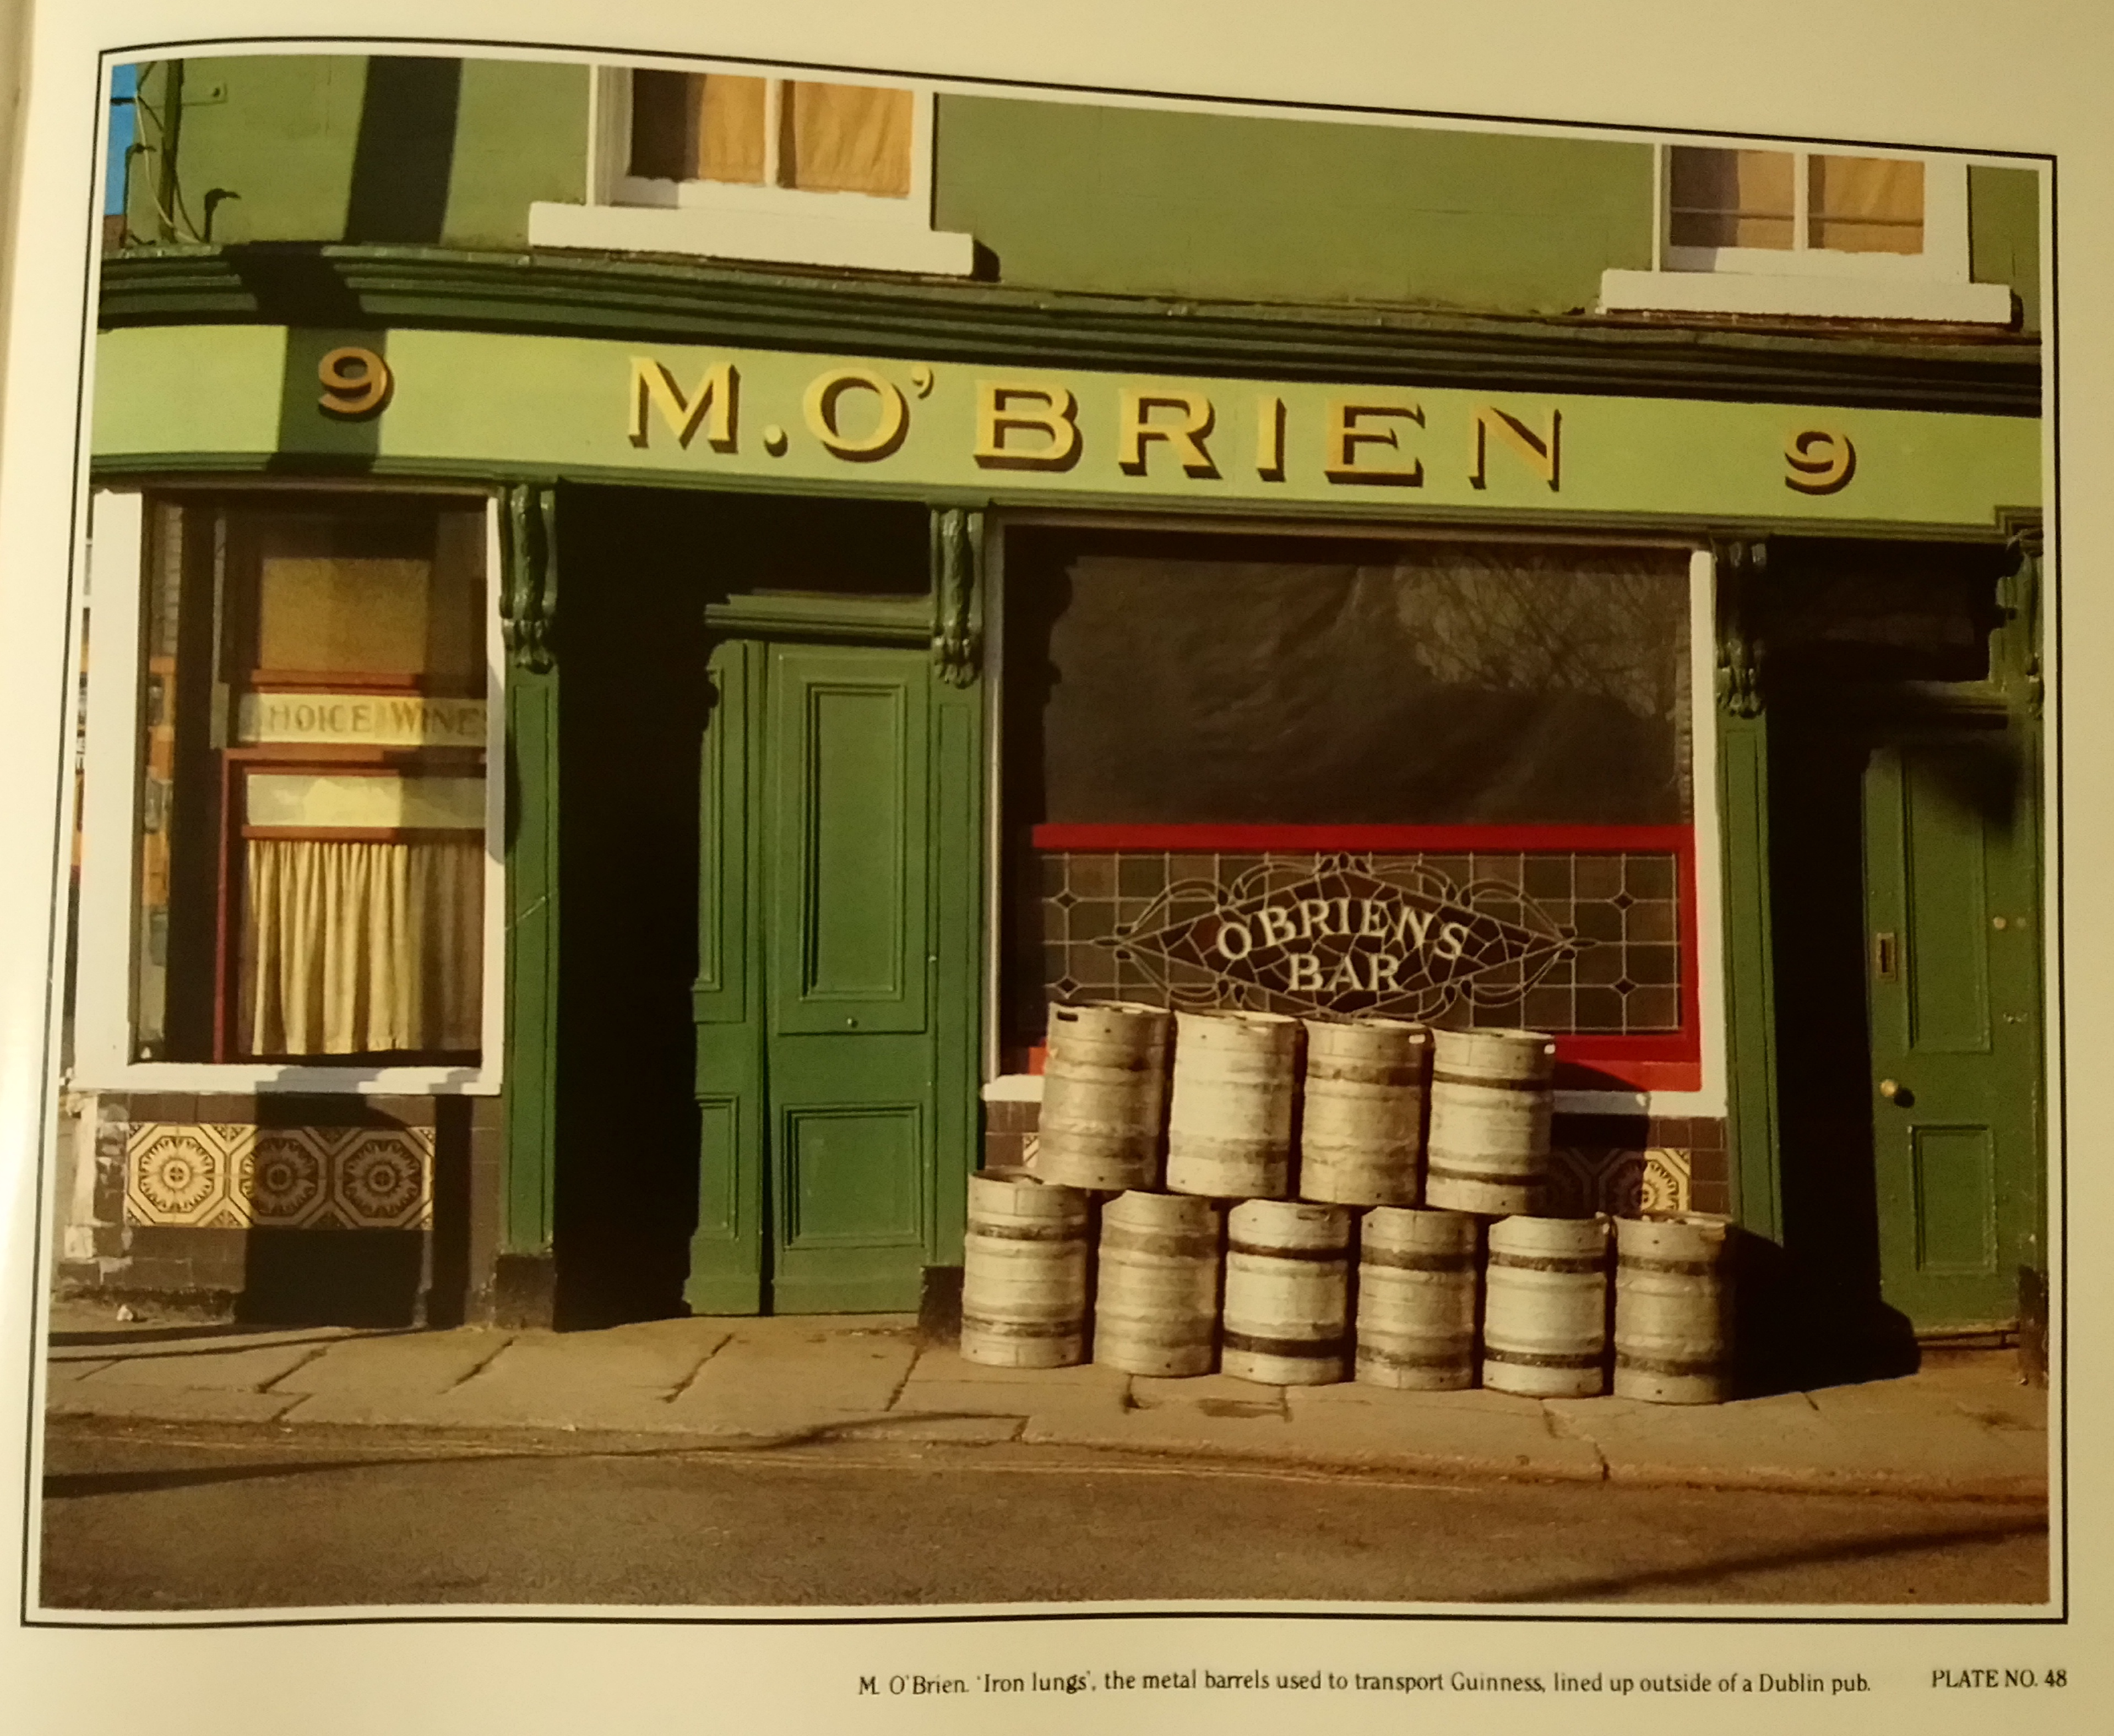 ebd4389467192 M. O'Brien's pub at 8-9 Sussex Terrace, close to Leeson Street Bridge. A  boozer we sampled during one of our last pub crawls in June 2012.